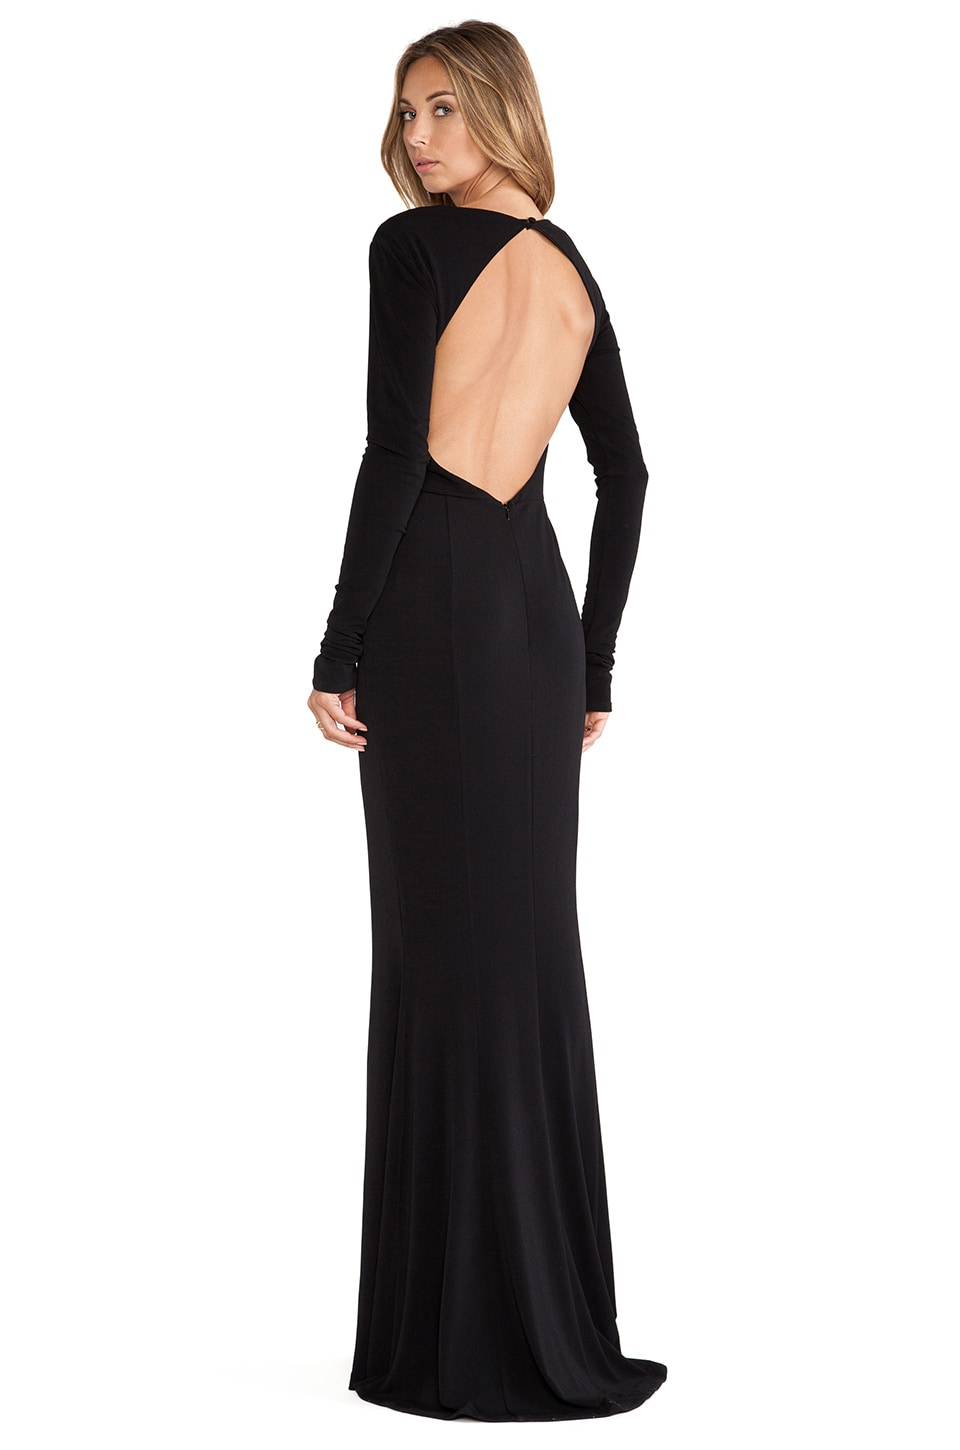 RACHEL ZOE Liana Open Back Maxi Dress in Black